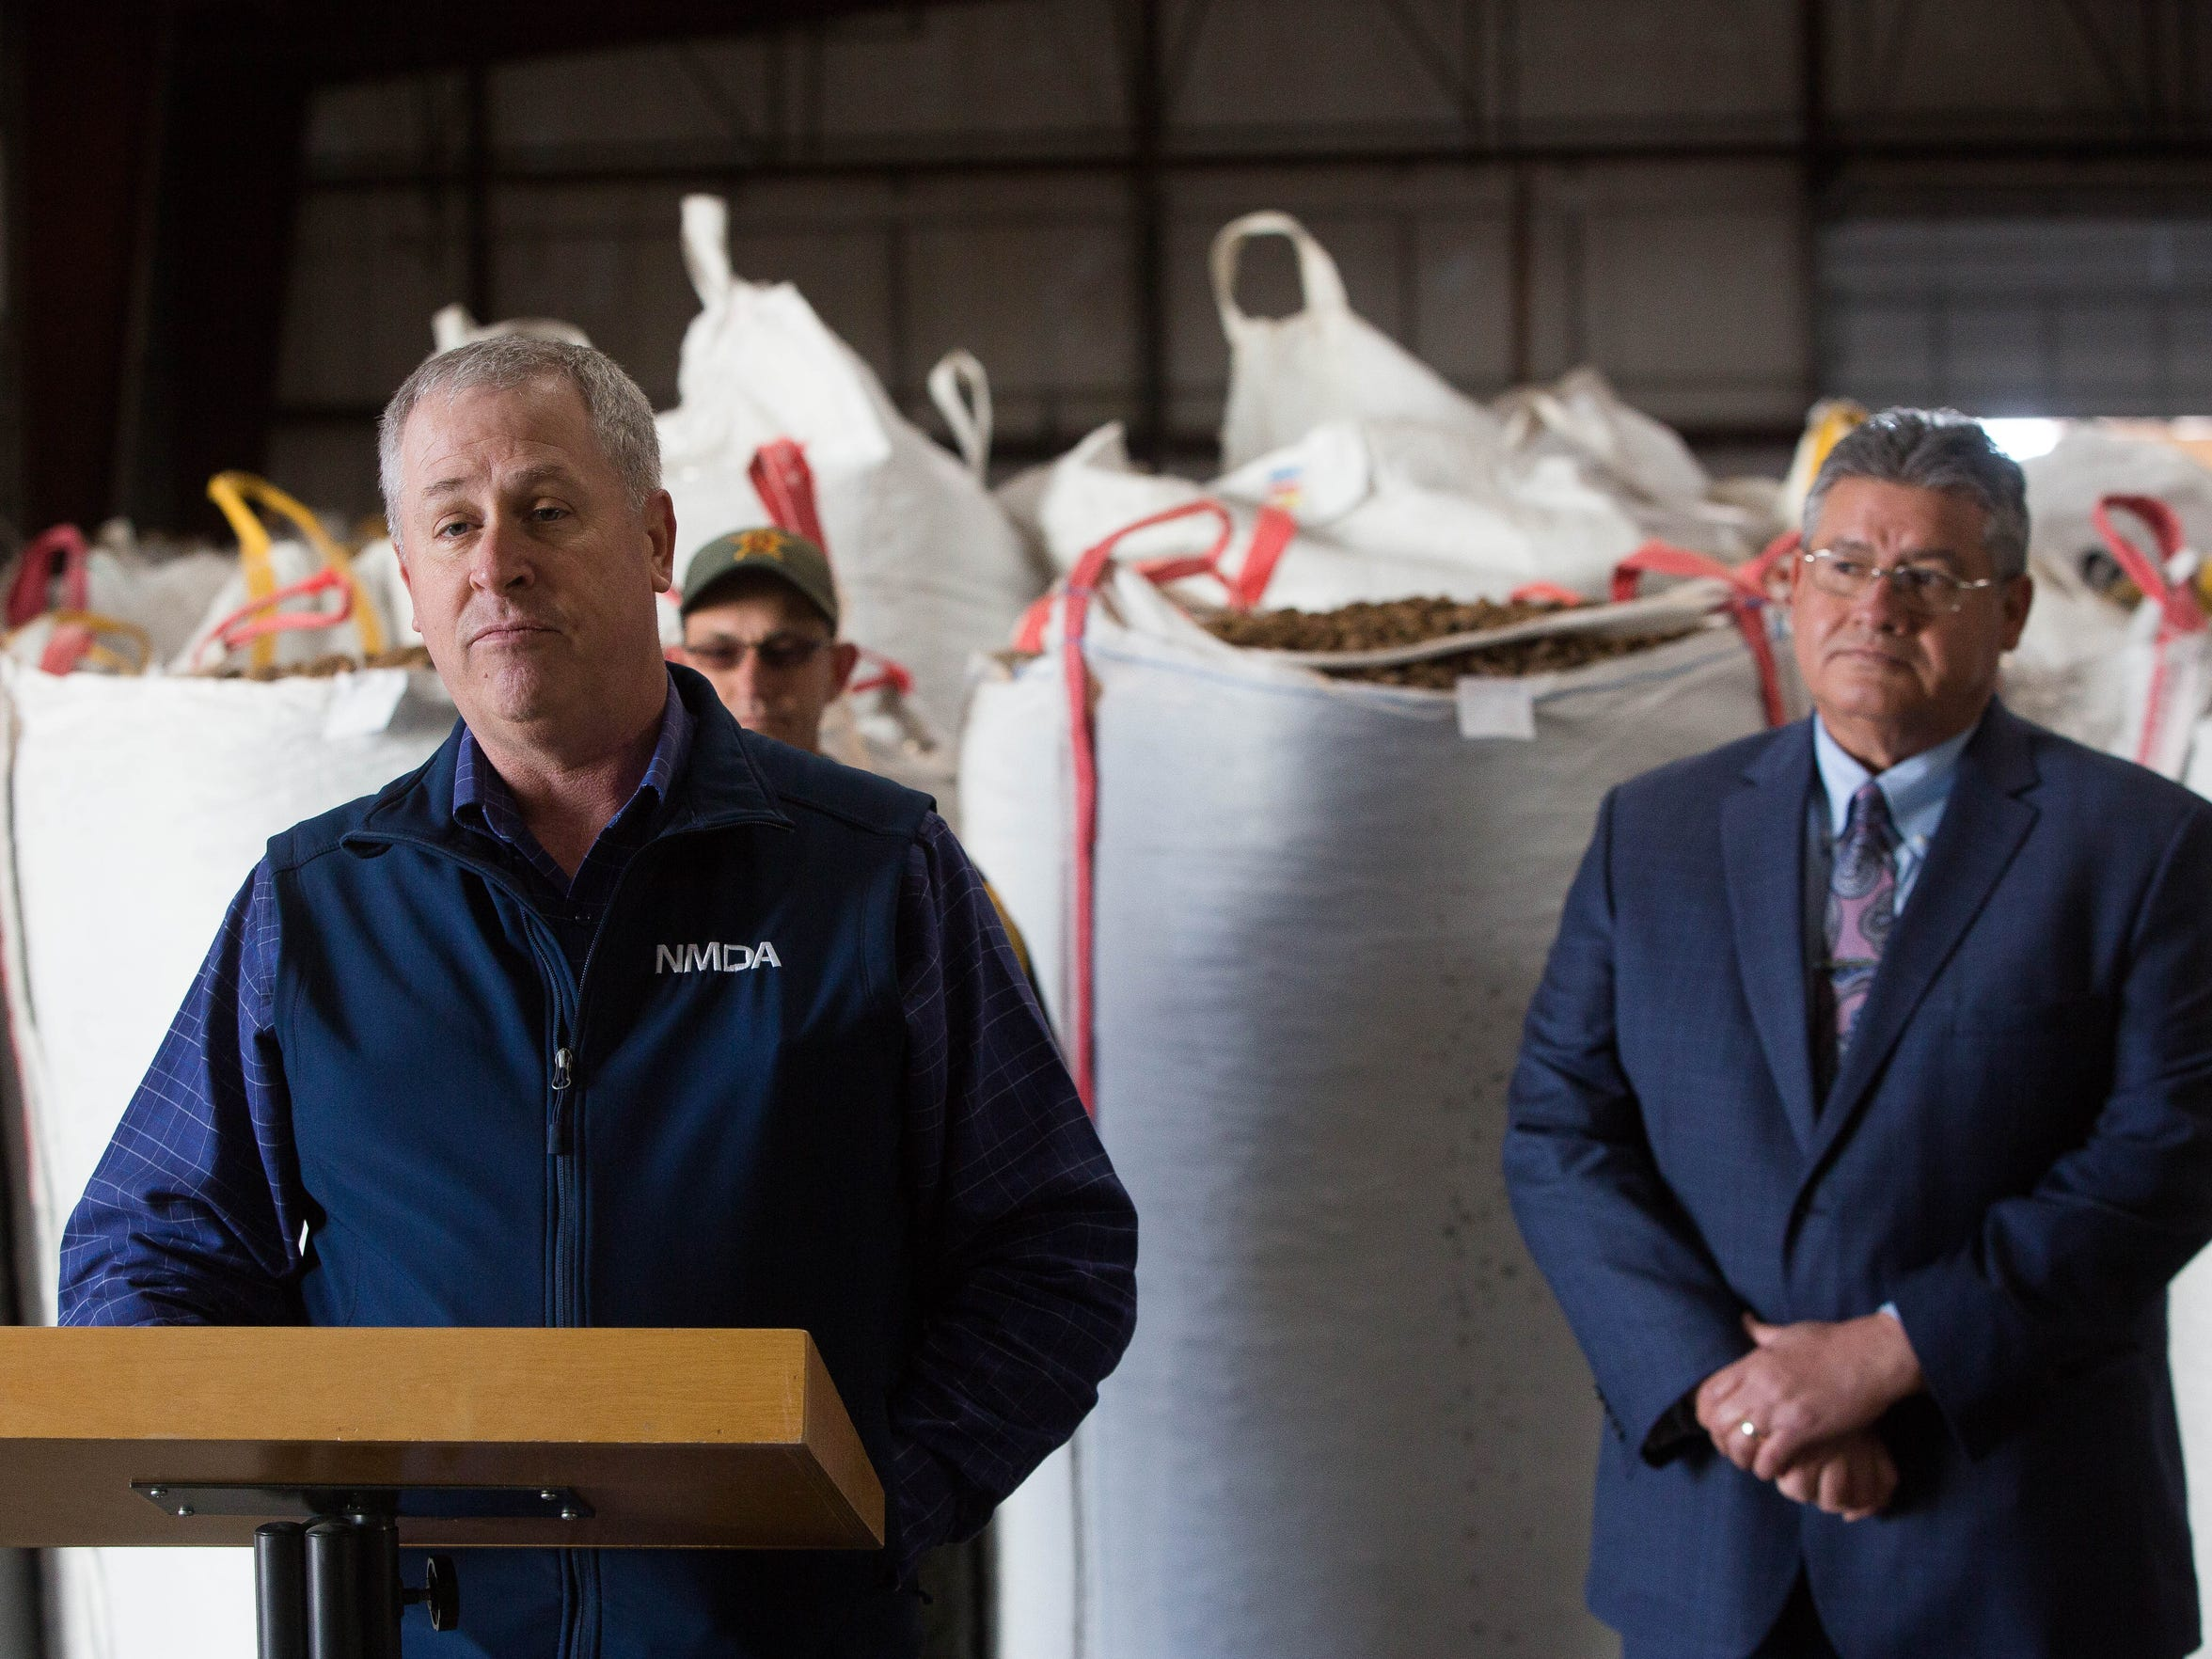 Jeff Witte, New Mexico secretary of agriculture, talks during a press conference about the pecan weevil quarantine and the theft of pecans in southern New Mexico. Wednesday Dec. 20, 2017 at San Saba Pecan.